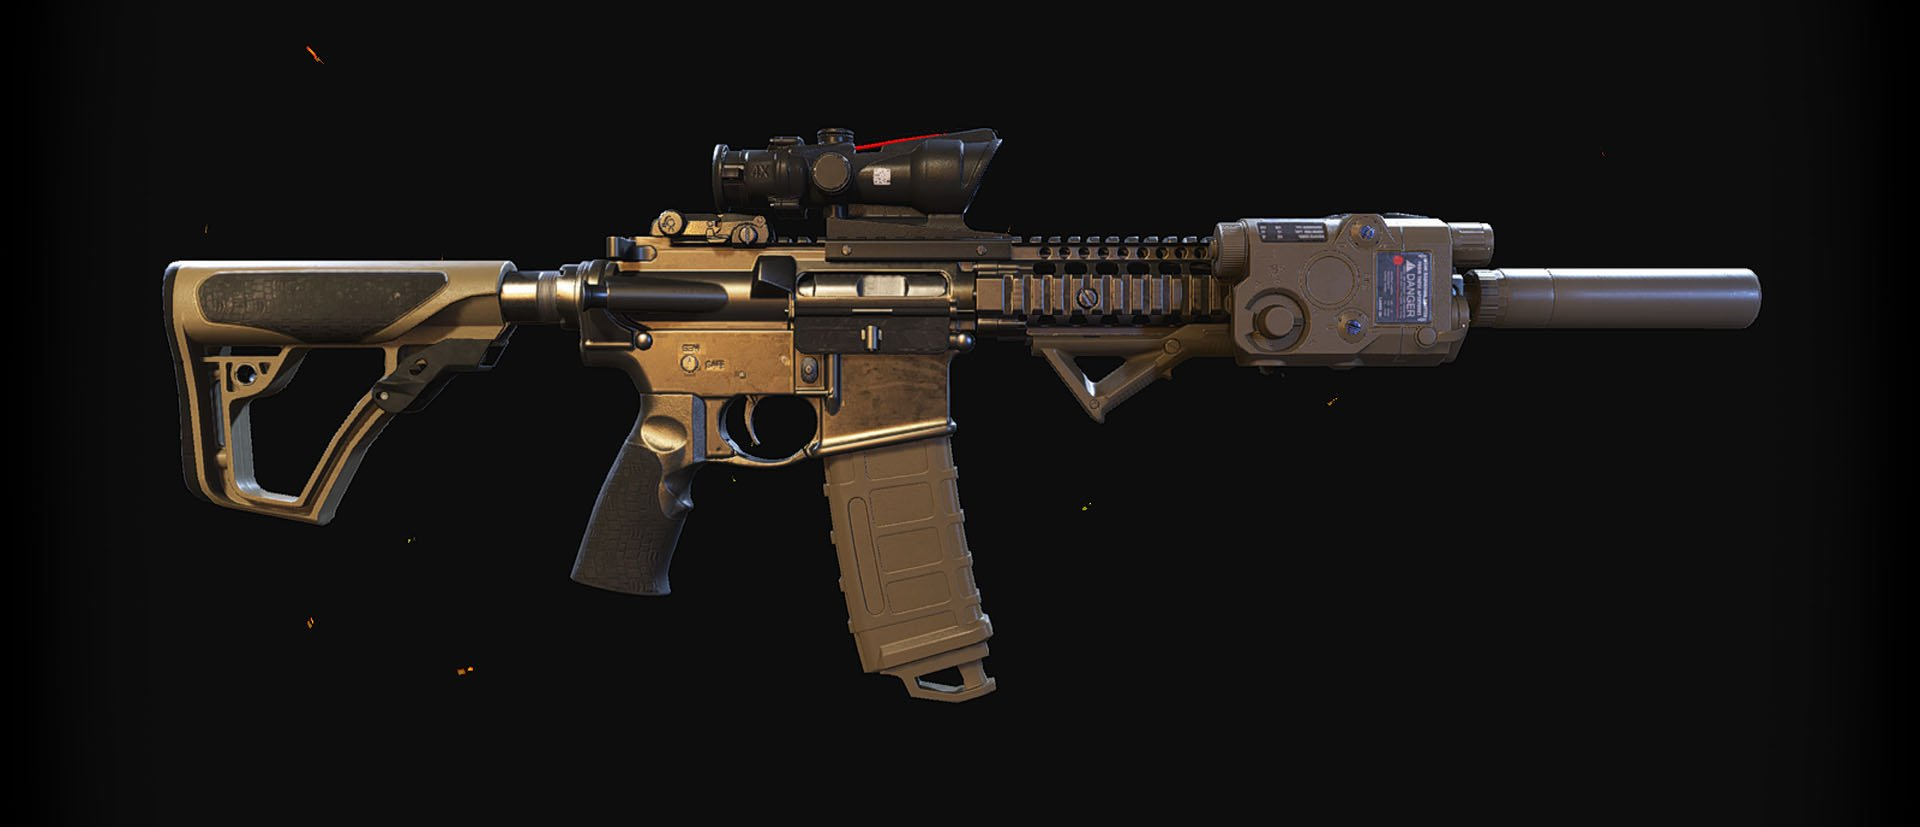 MK18 rifle from Ghost Recon Wildlands